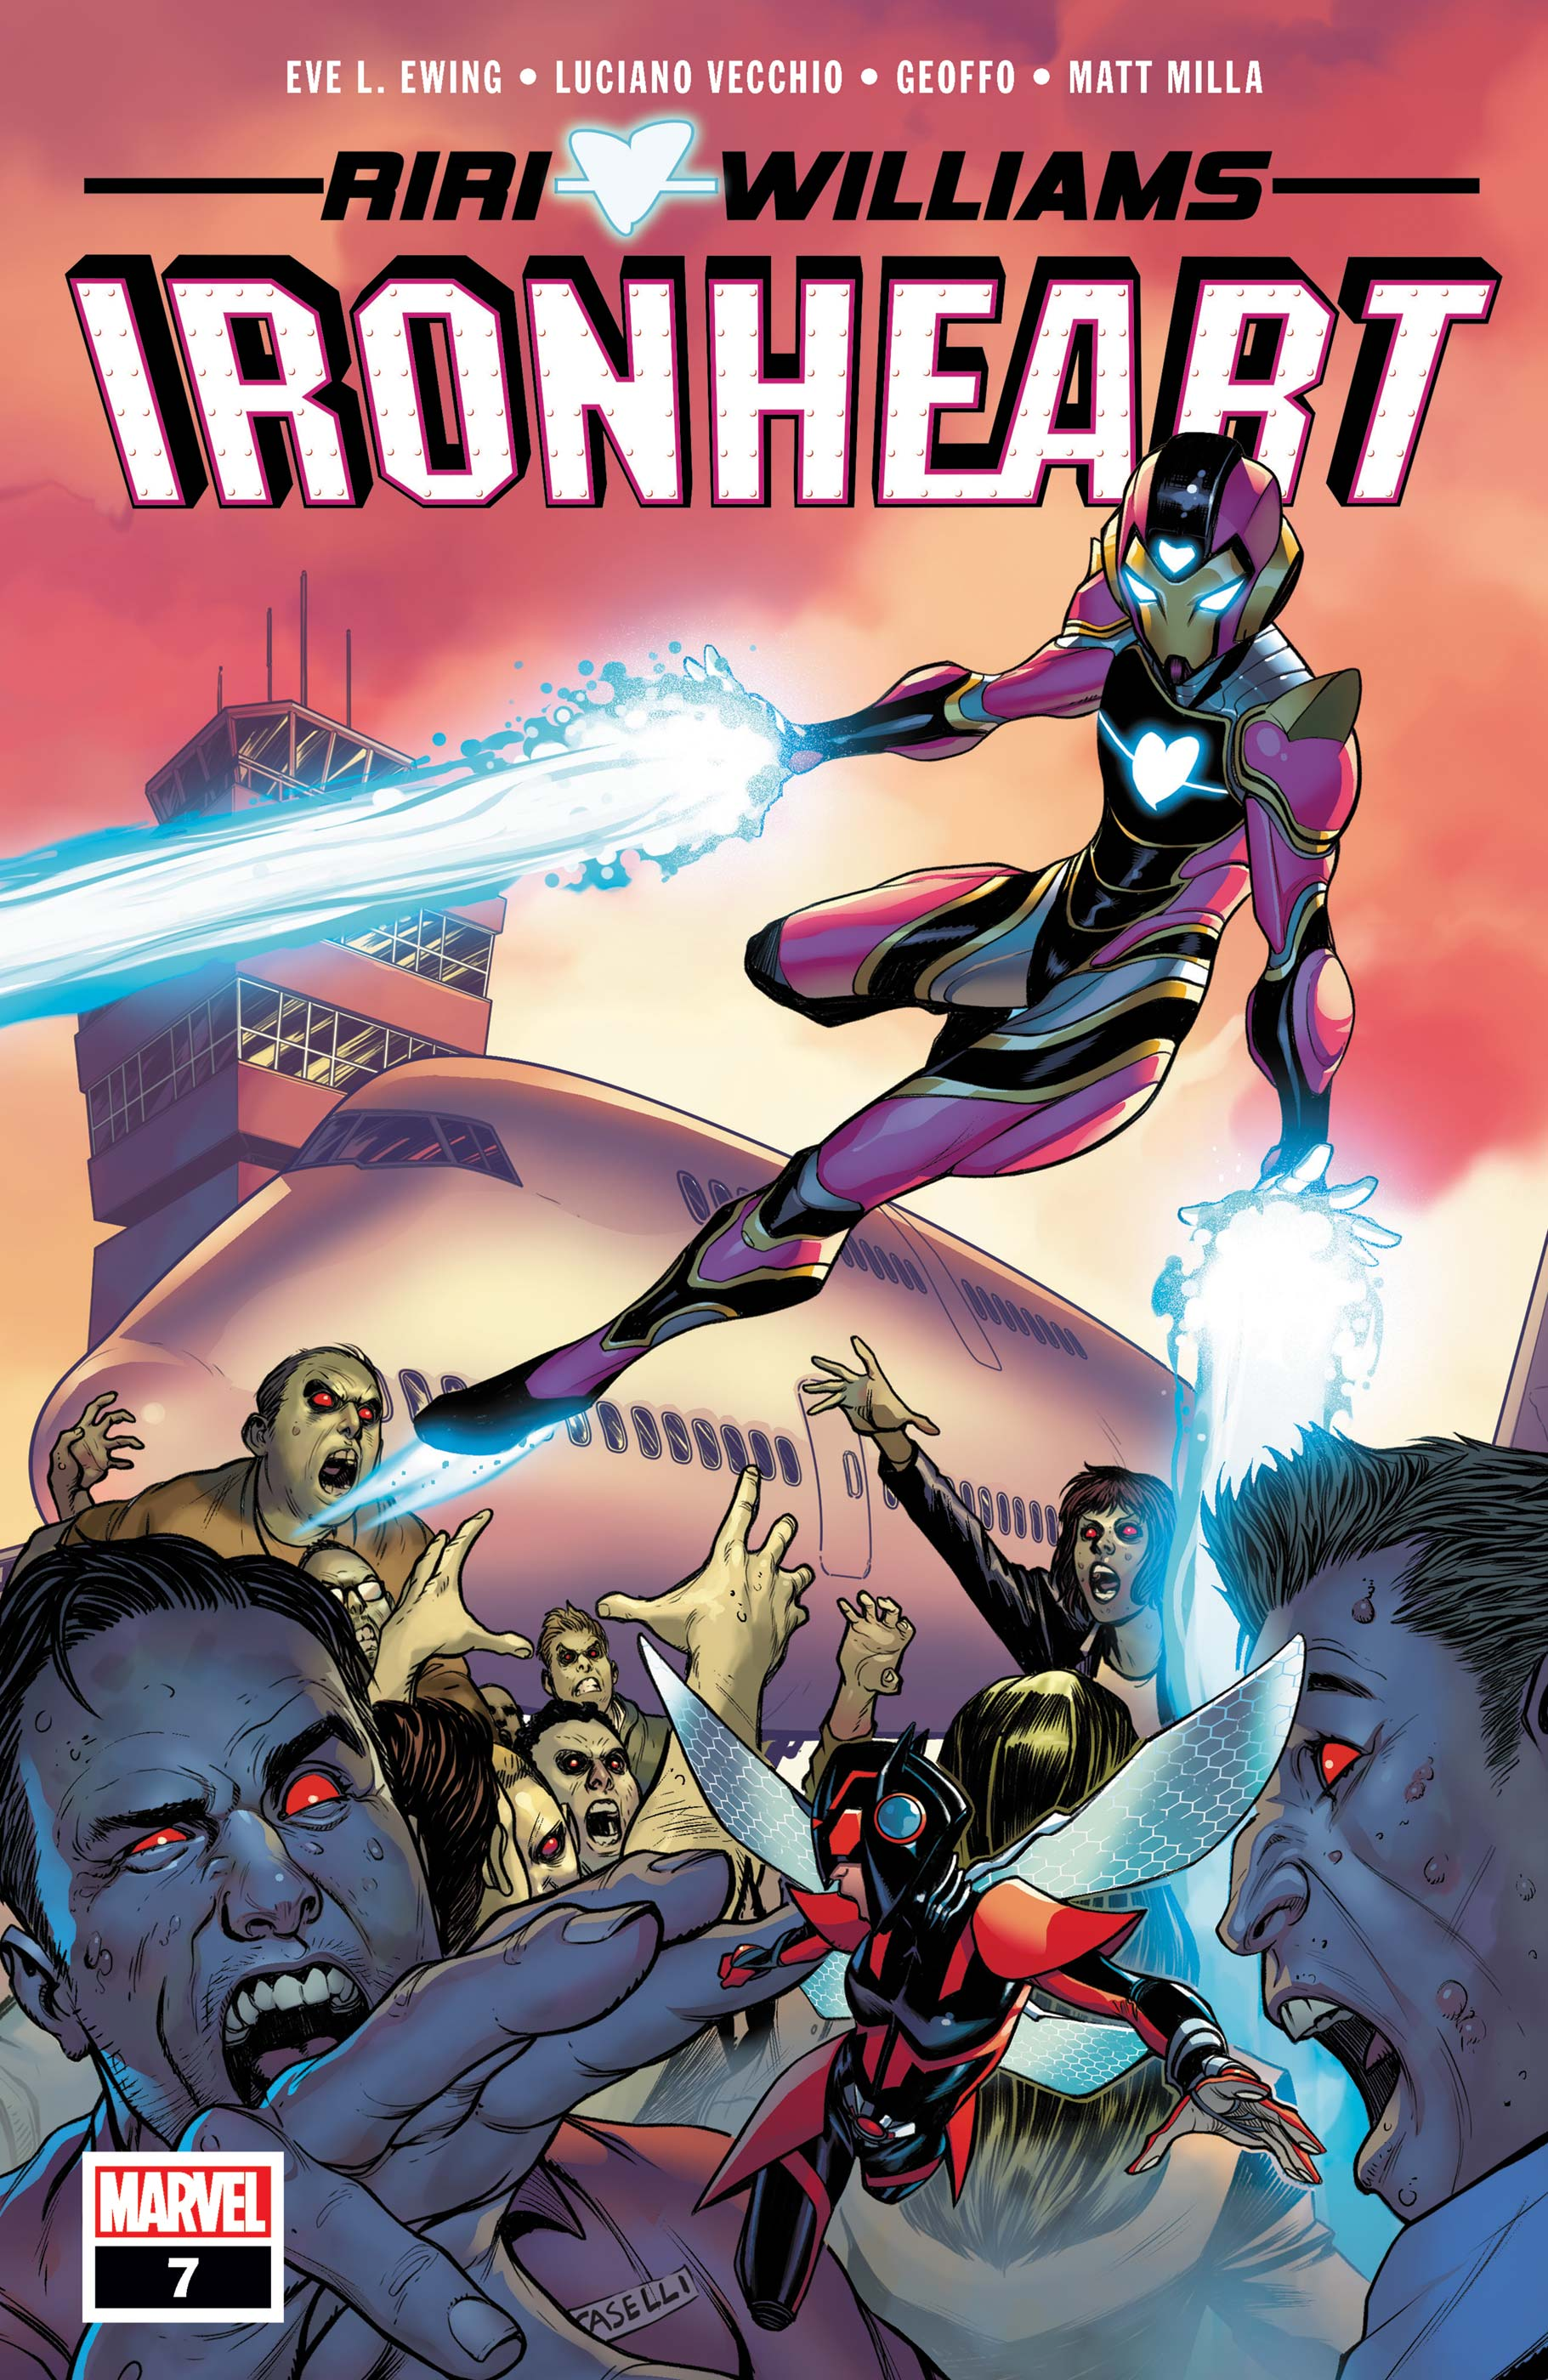 Ironheart #7. Cover by Stefano Caselli.